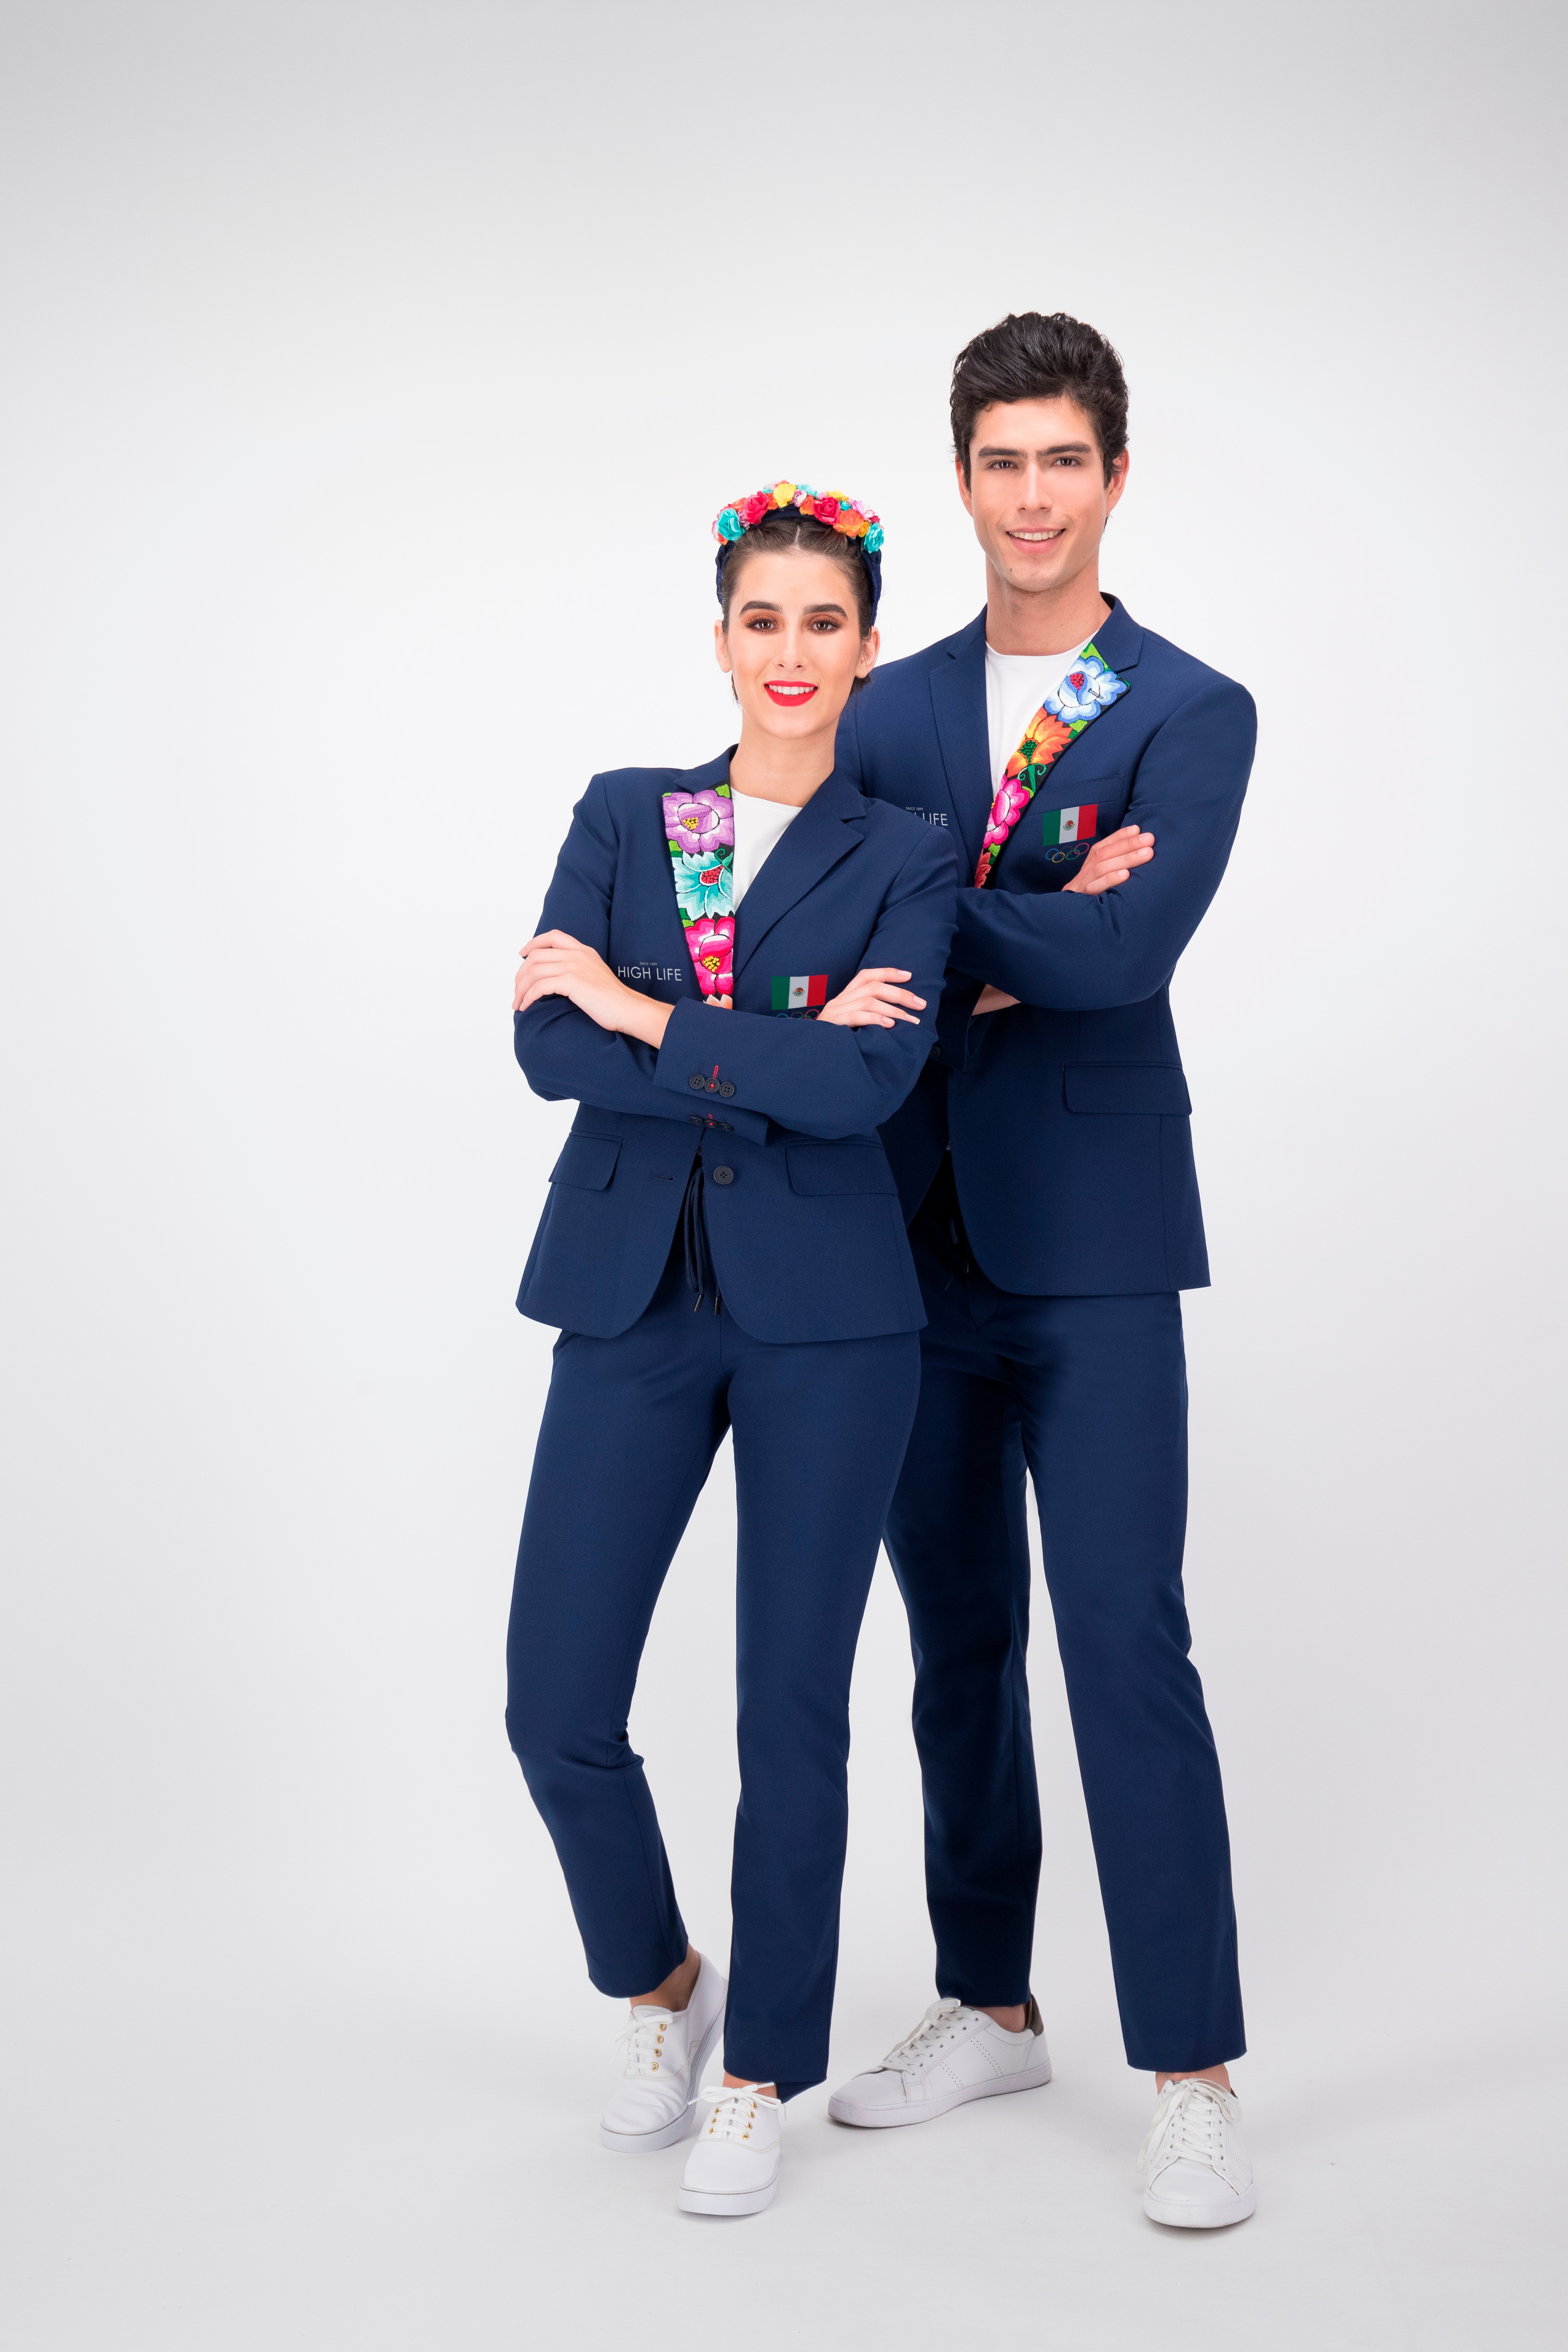 This image provided by High Life Mexico shows the opening ceremony outfits for team Mexico. The Mexico Olympic Committee held a national online competition to choose the looks from three designs done by High Life. The winning design honors Oaxaca in a single, brightly colored lapel. (High Life Mexico via AP)(AP)